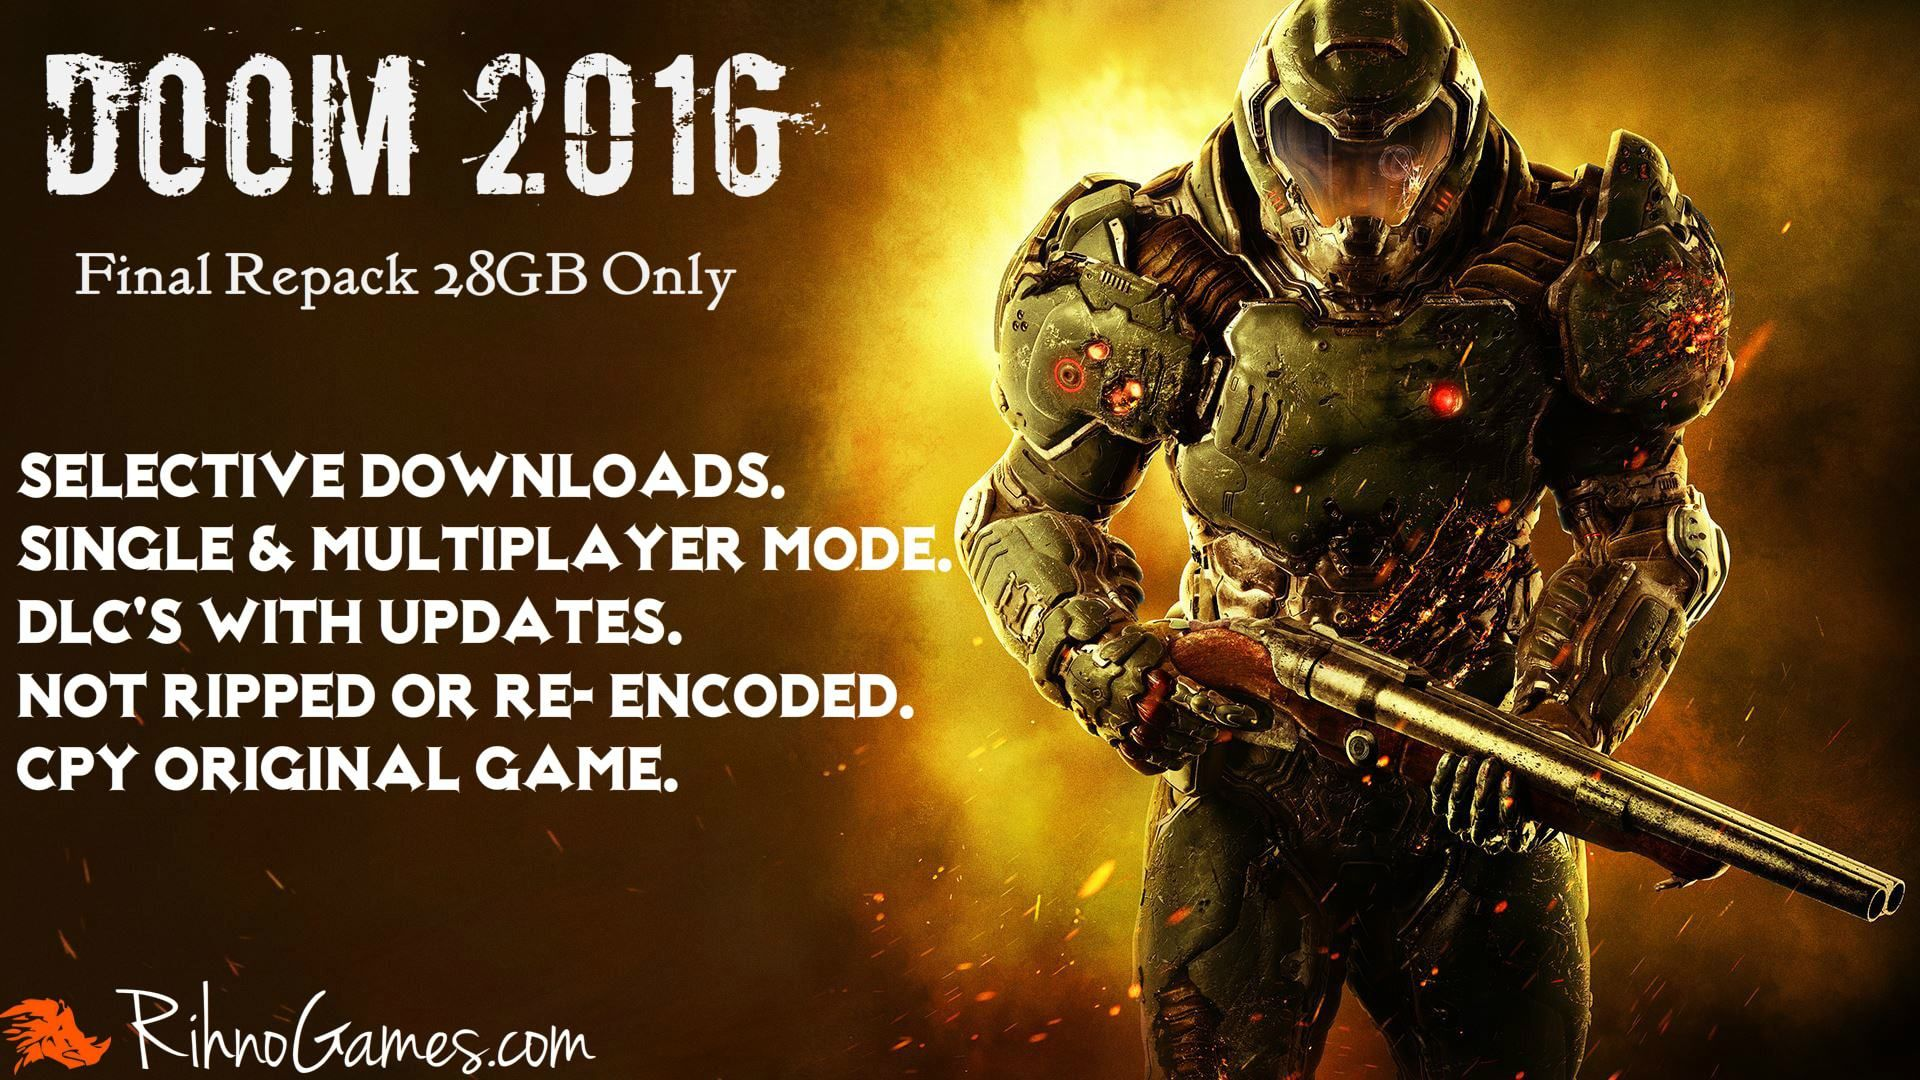 Doom 2016 Repack Only 28 GB Original CPY ISO Game  Selective